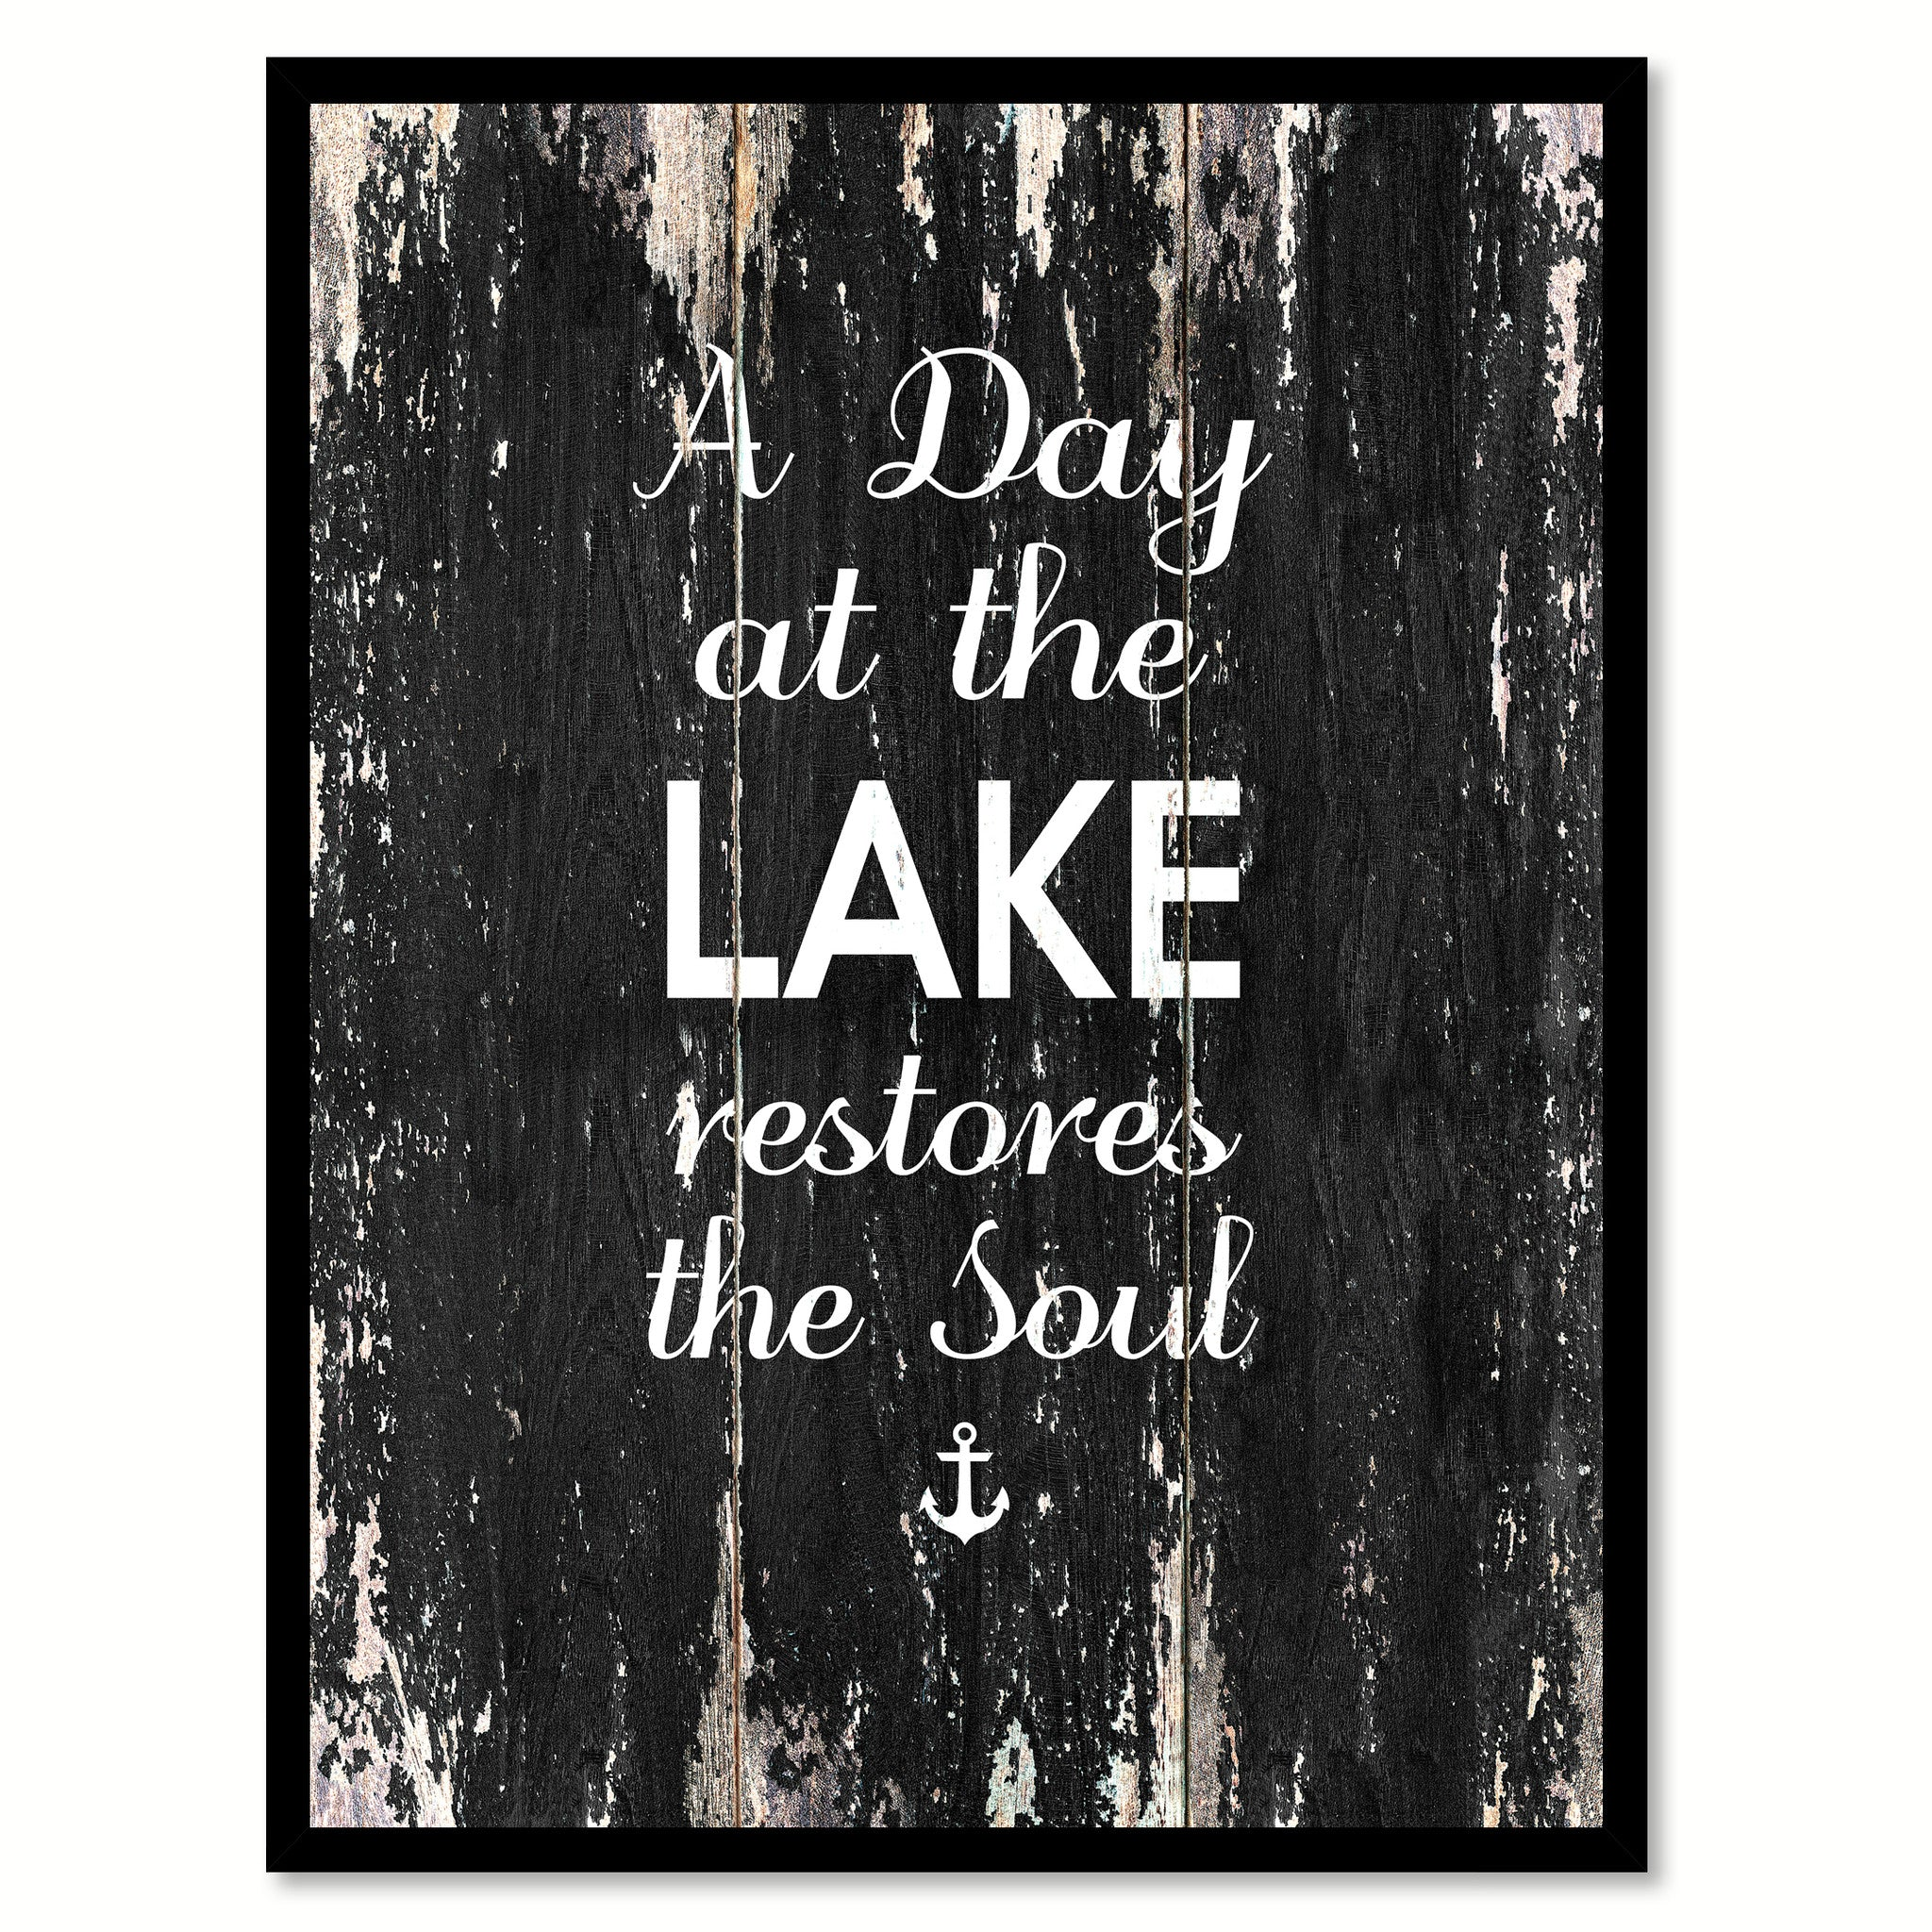 A day at the lake restores the soul Motivational Quote Saying Canvas Print with Picture Frame Home Decor Wall Art